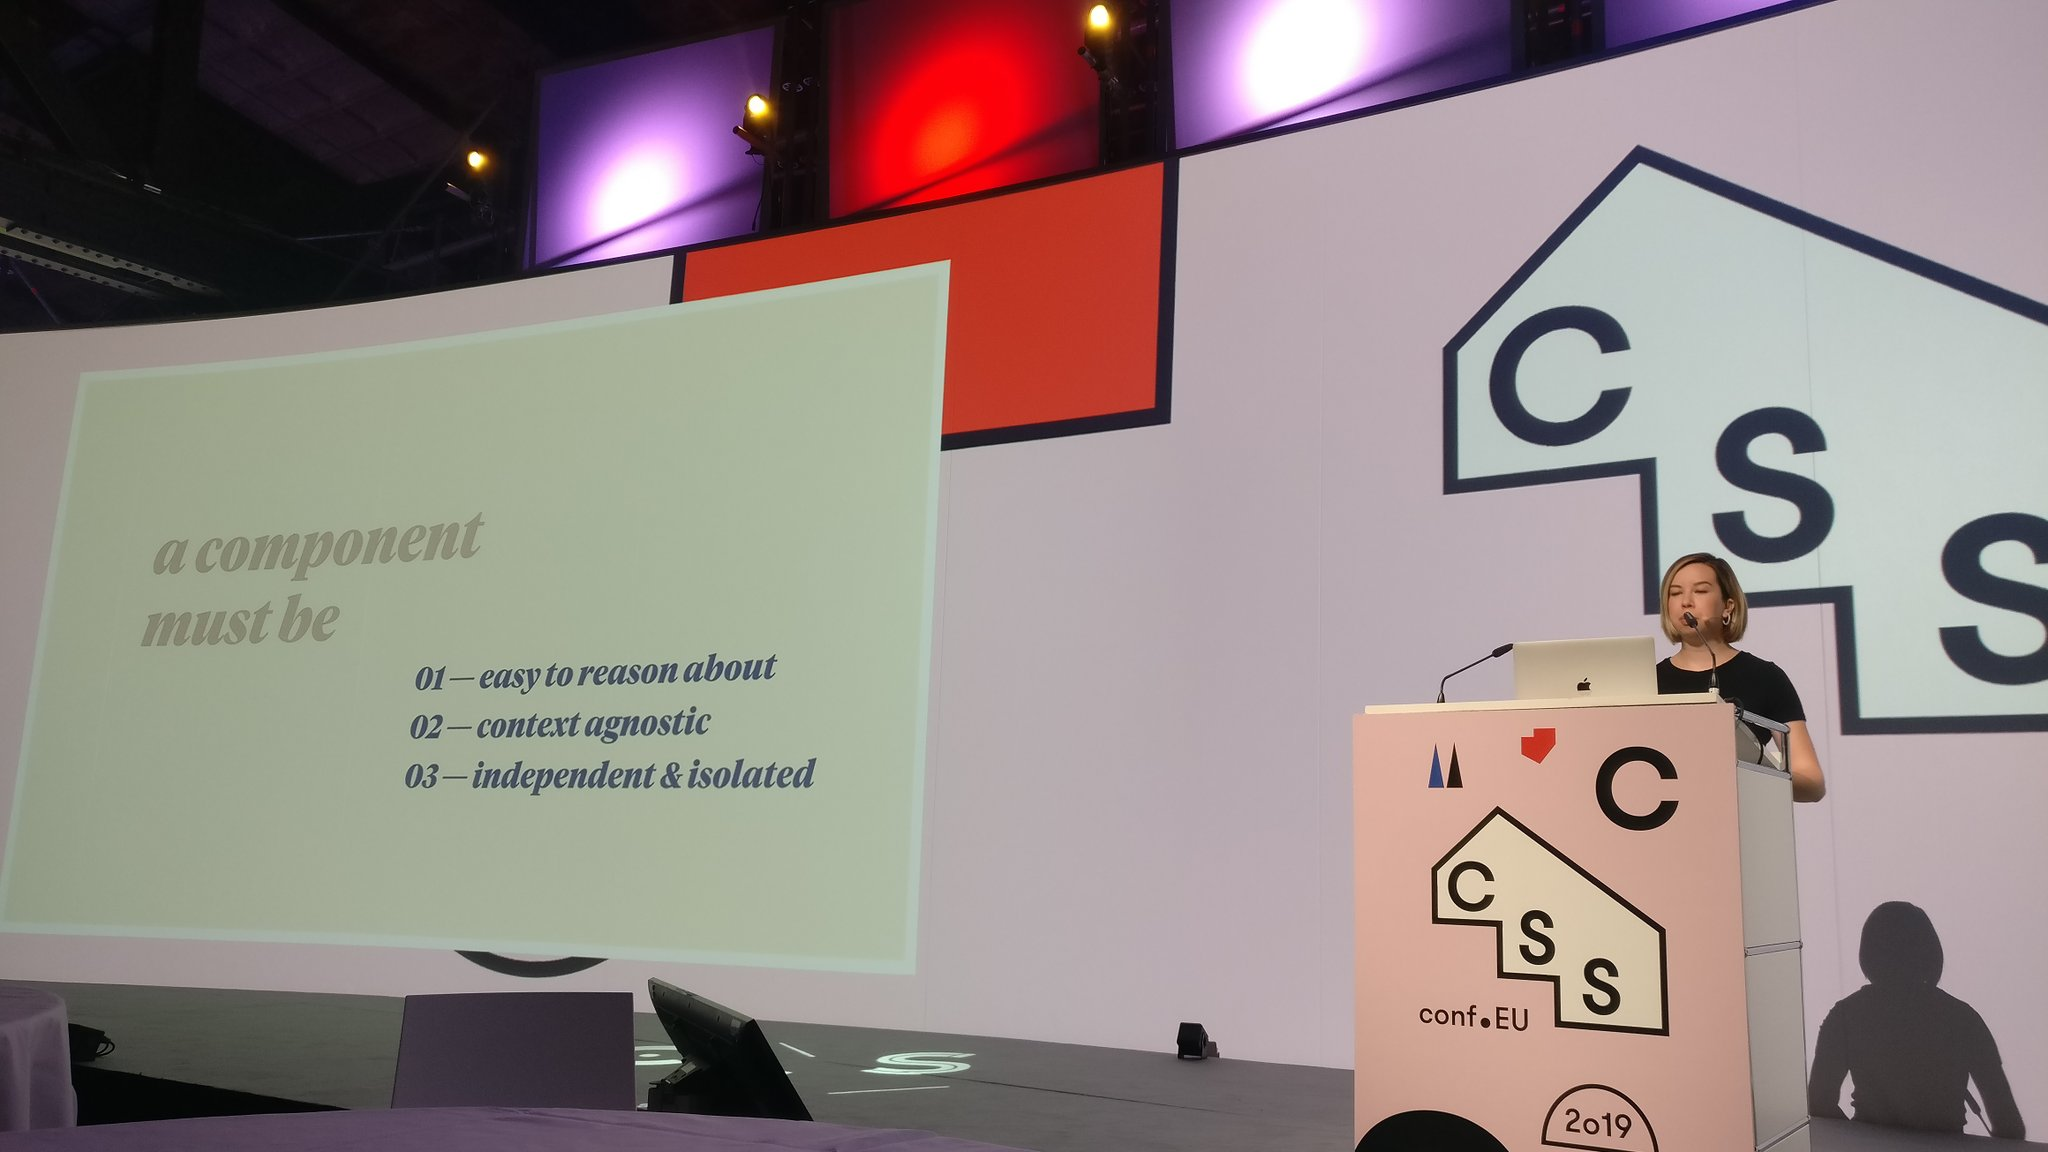 Elyse on stage giving a conference talk at CSSConf EU Berlin